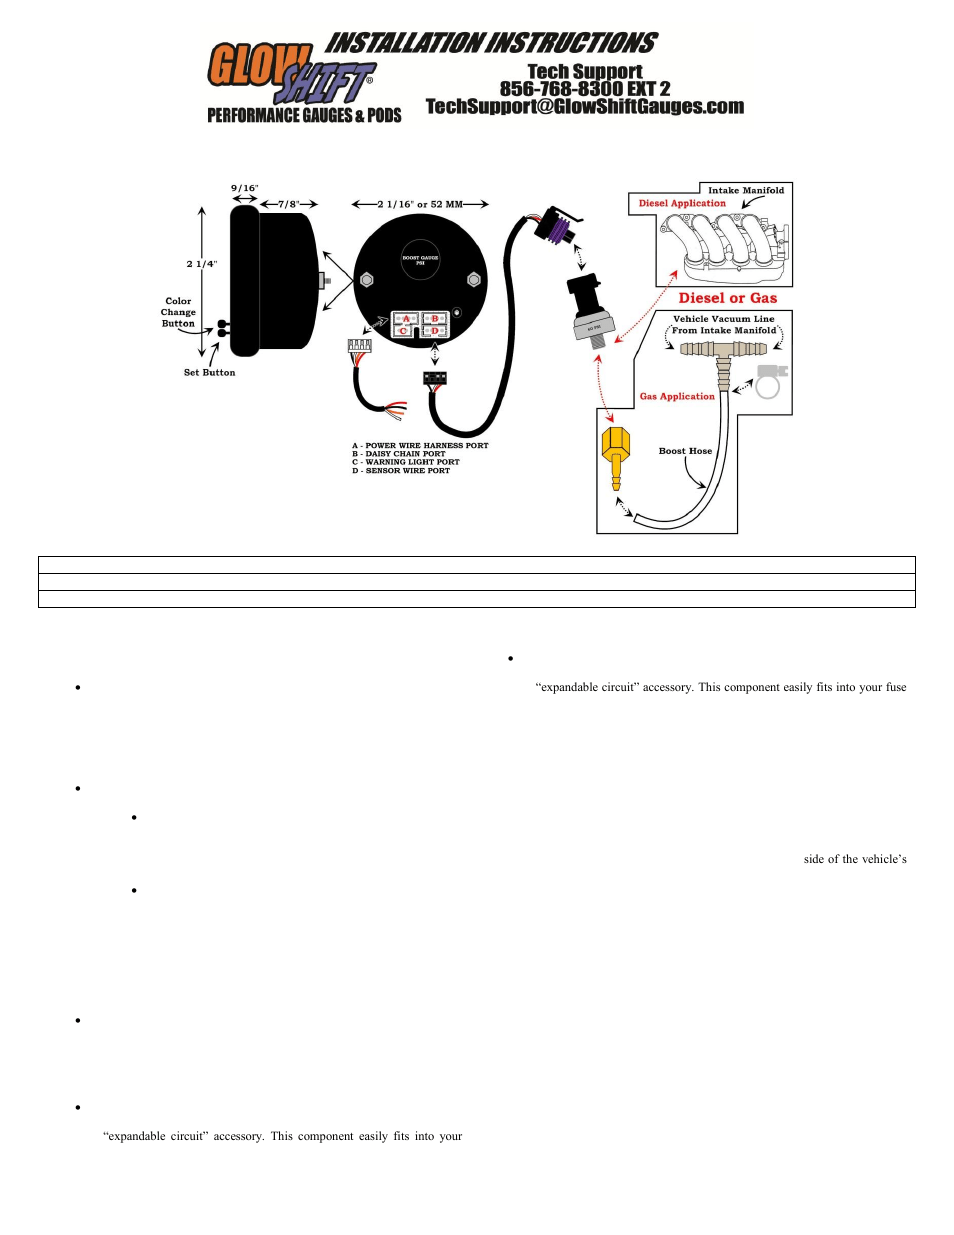 [WRG-1615] Trans Temp Gauge Wiring Diagram